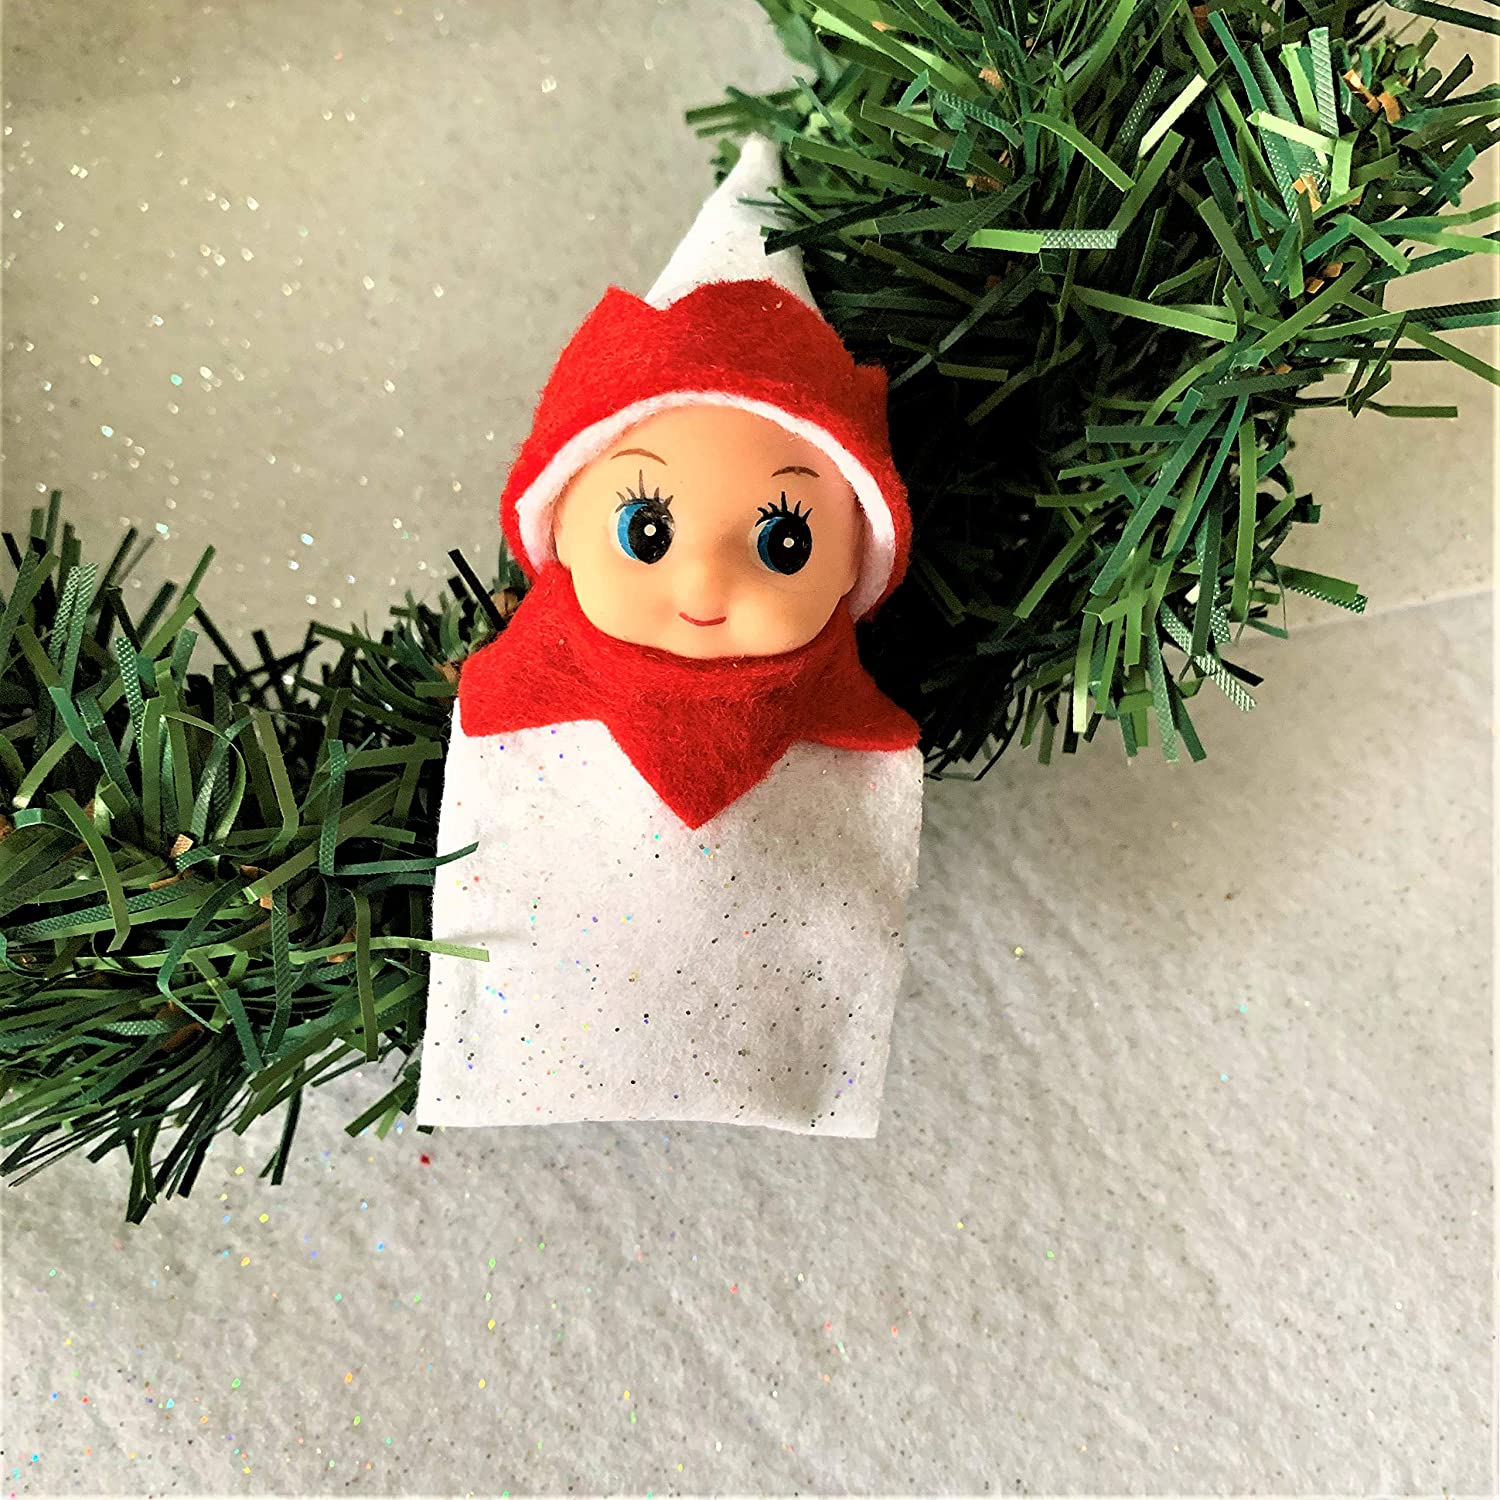 Baby Elf Doll in White and Red Toddler Elf Doll Christmas Elf in Training